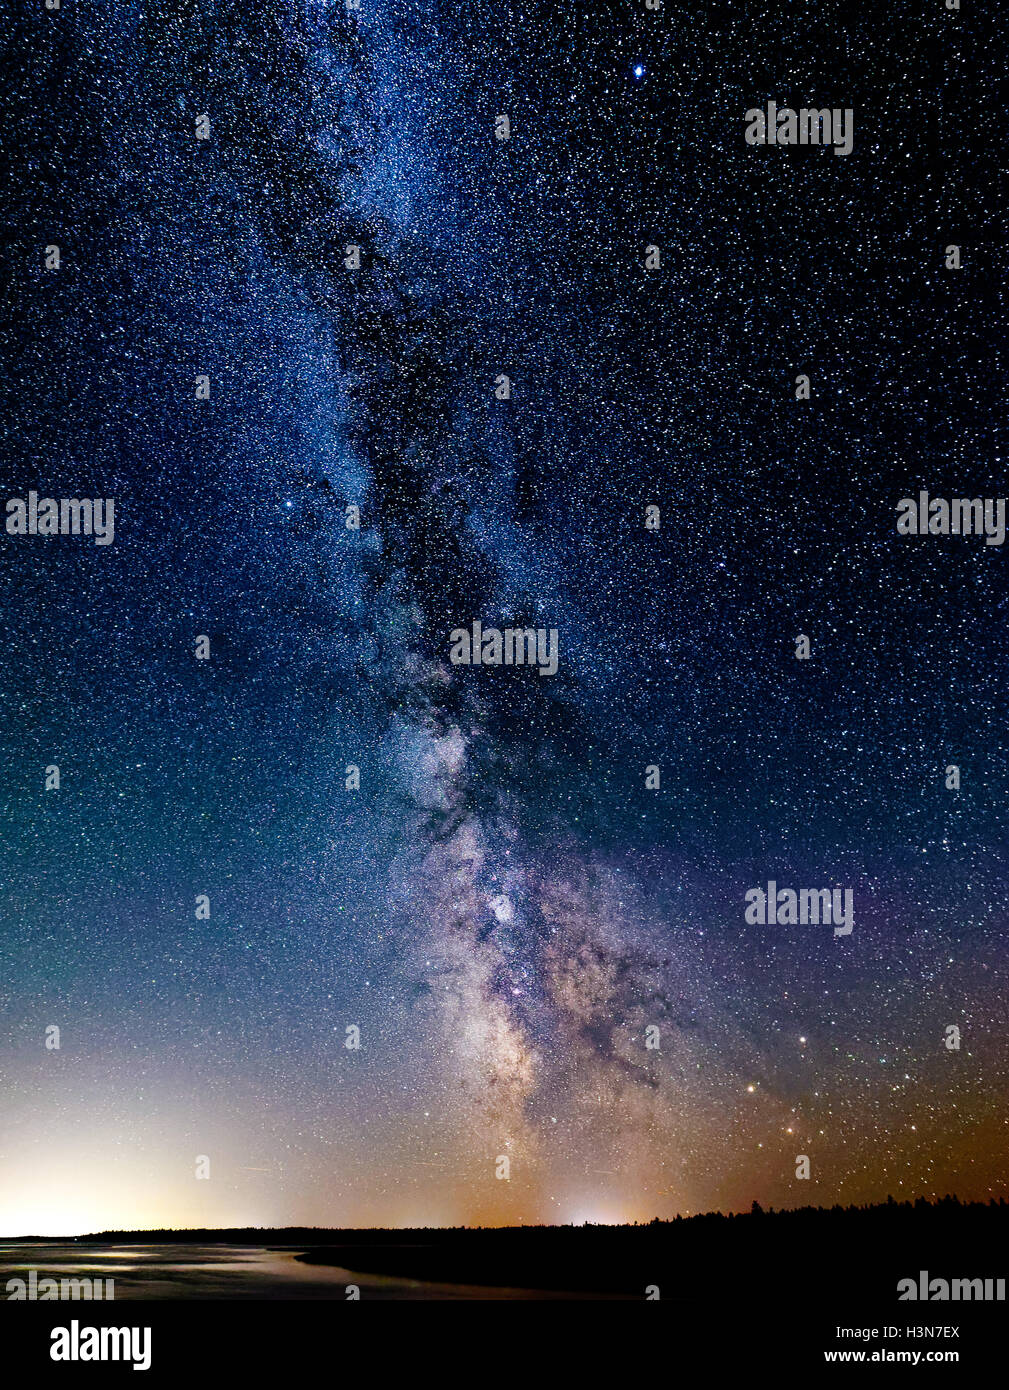 The Milky Way in dark skies in Kouchibouguac National Park in New Brunswick, Canada - Stock Image